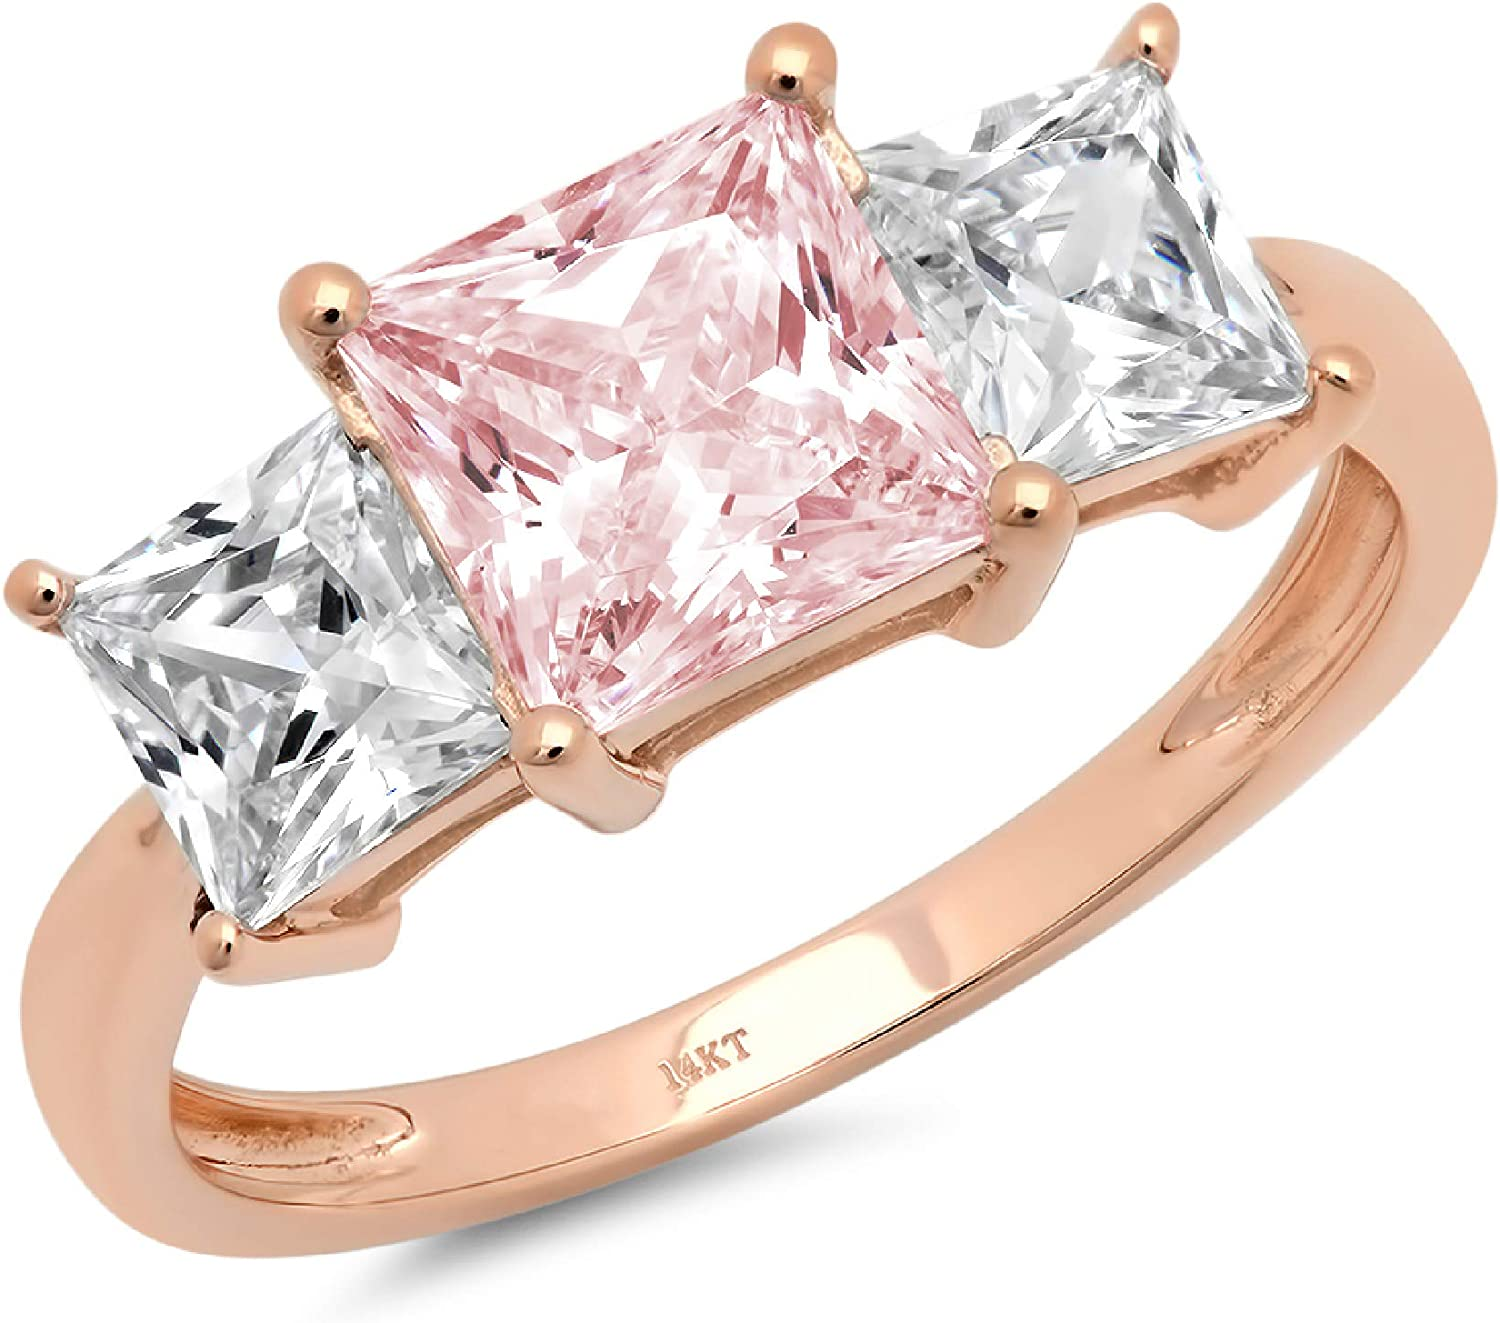 2.94ct Brilliant Princess Cut 3 Stone Solitaire with Accent Pink Ideal VVS1 Simulated Diamond CZ Engagement Promise Statement Anniversary Bridal Wedding Ring 14k Rose Gold